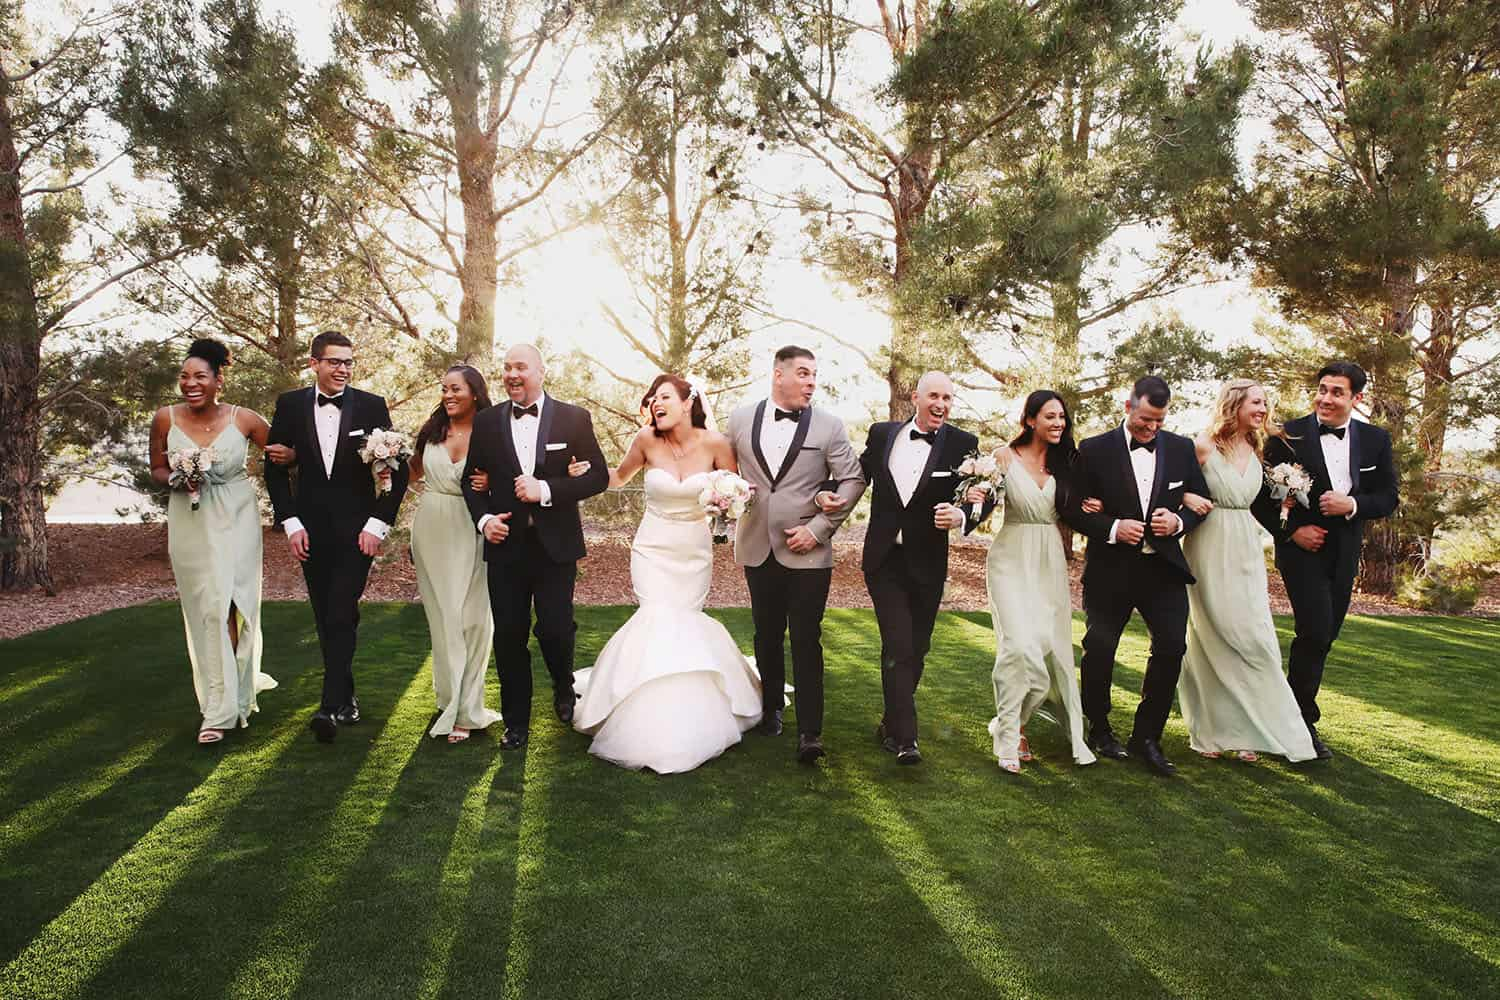 A bride and groom stroll arm-in-arm across a lawn with their bridesmaids and groomsmen.